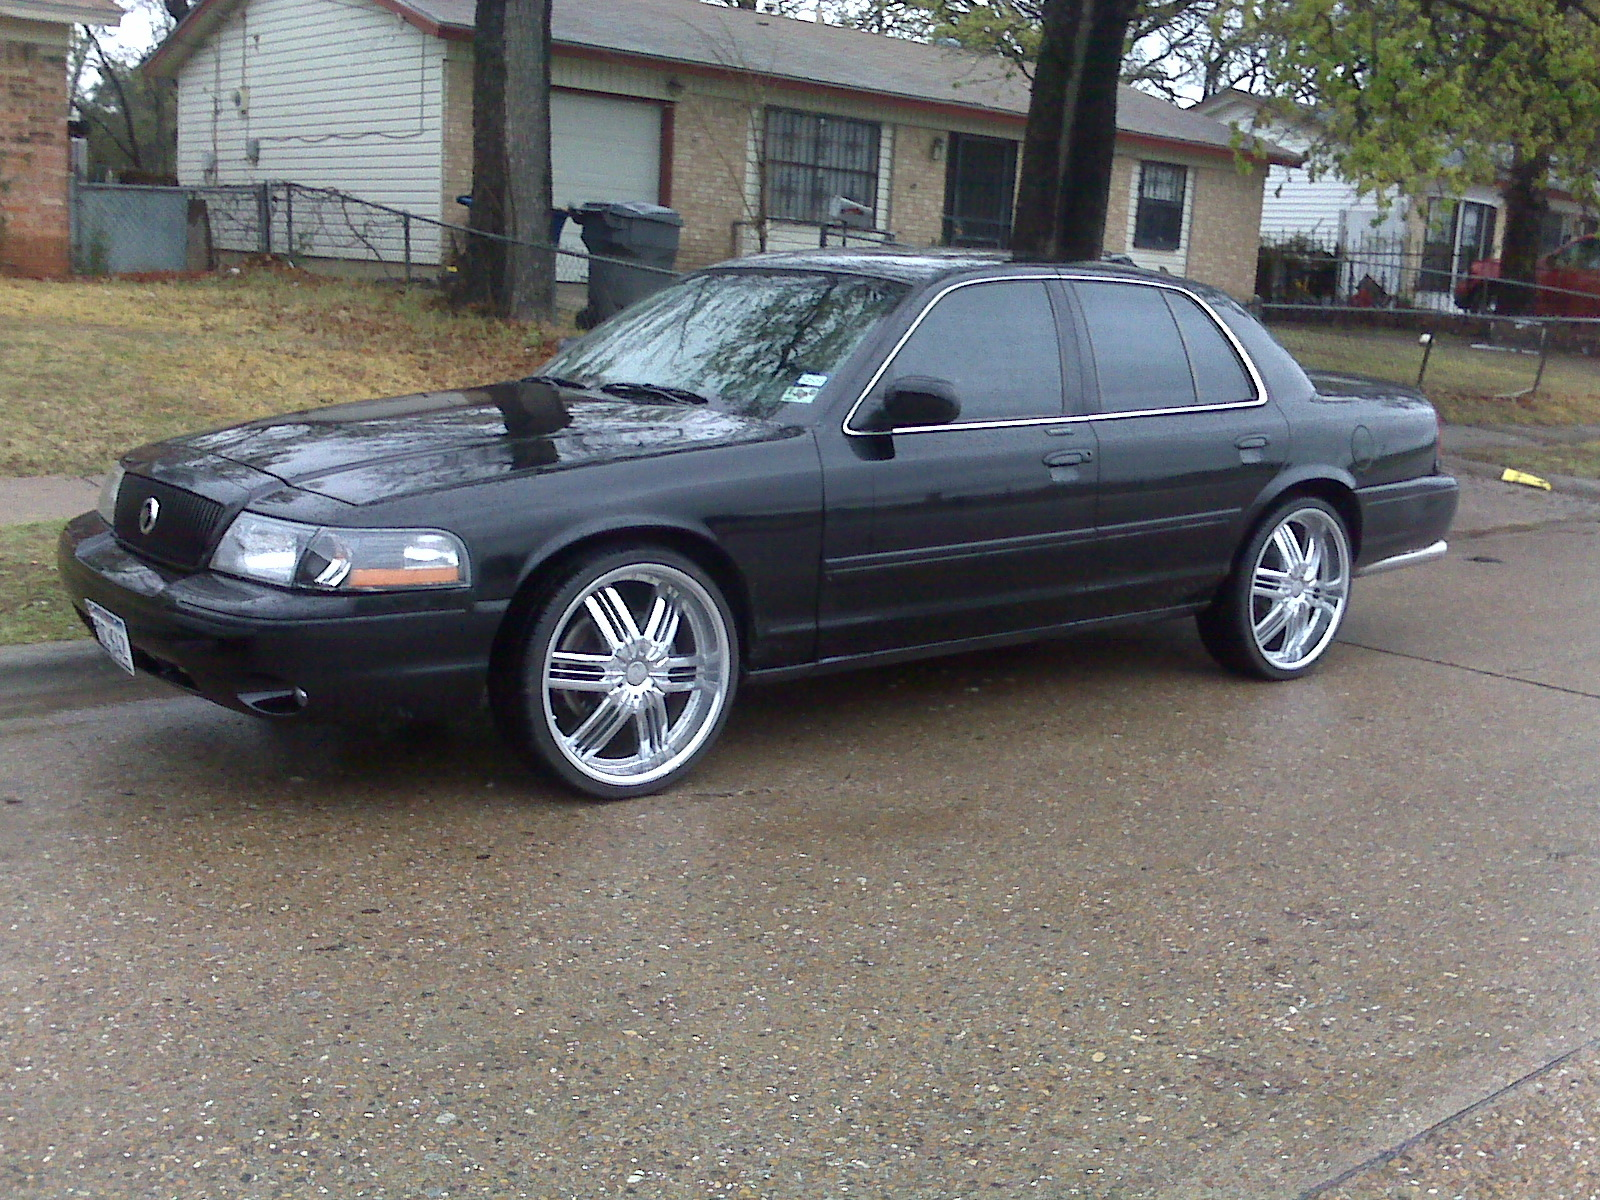 marauder214 2003 mercury marauder specs photos modification info at cardomain. Black Bedroom Furniture Sets. Home Design Ideas